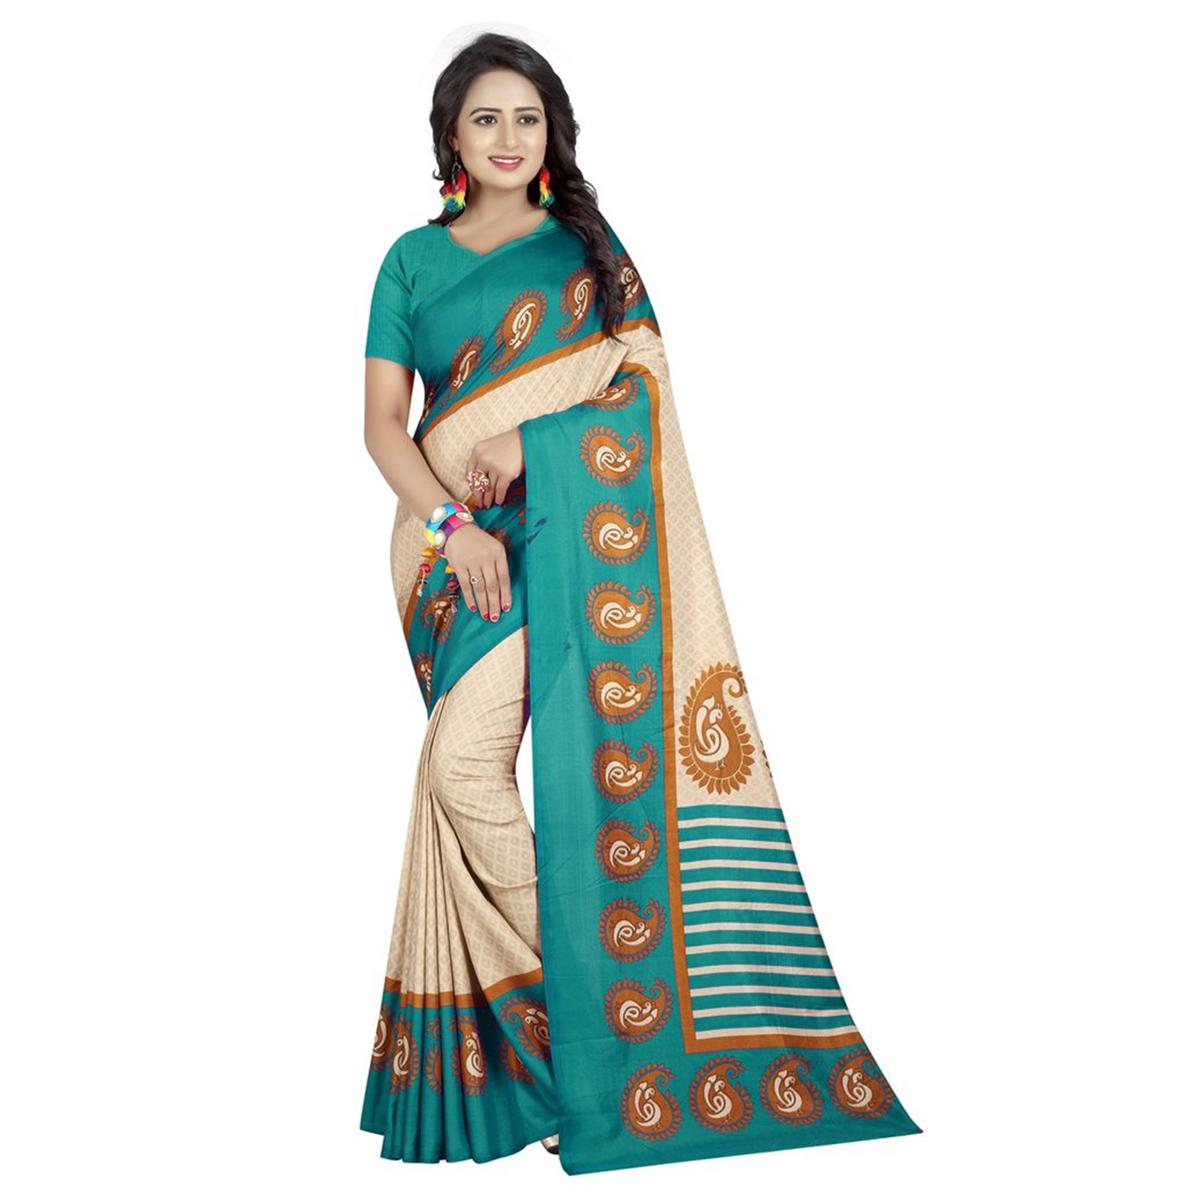 Impressive Off White-Turquoise Green Colored Casual Printed Art Silk Saree